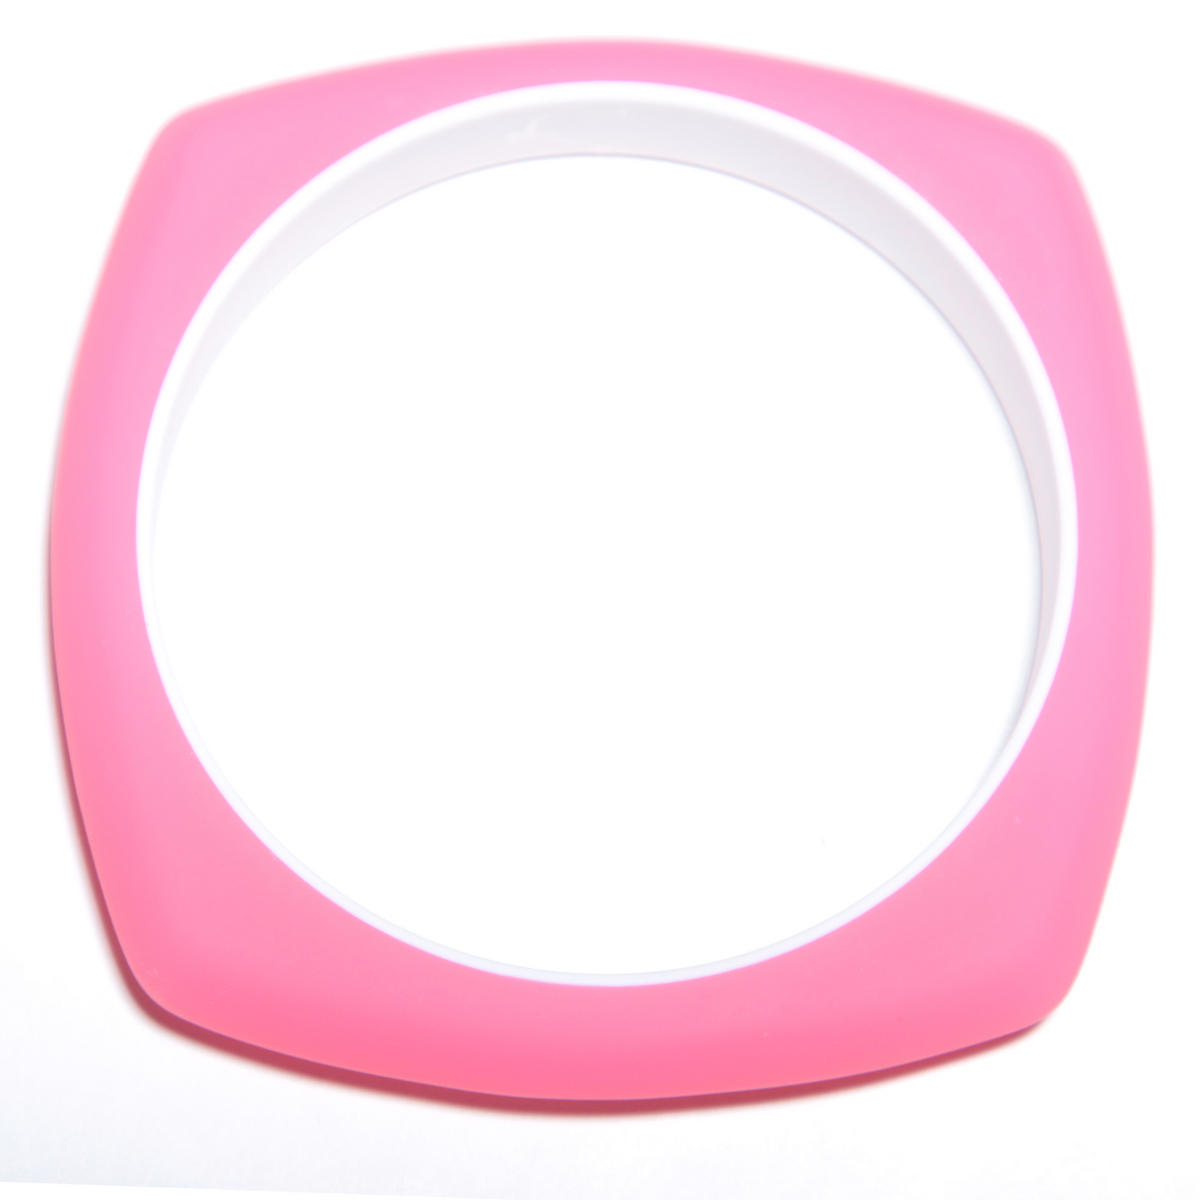 Neon Pink Rubber Bracelet Preview